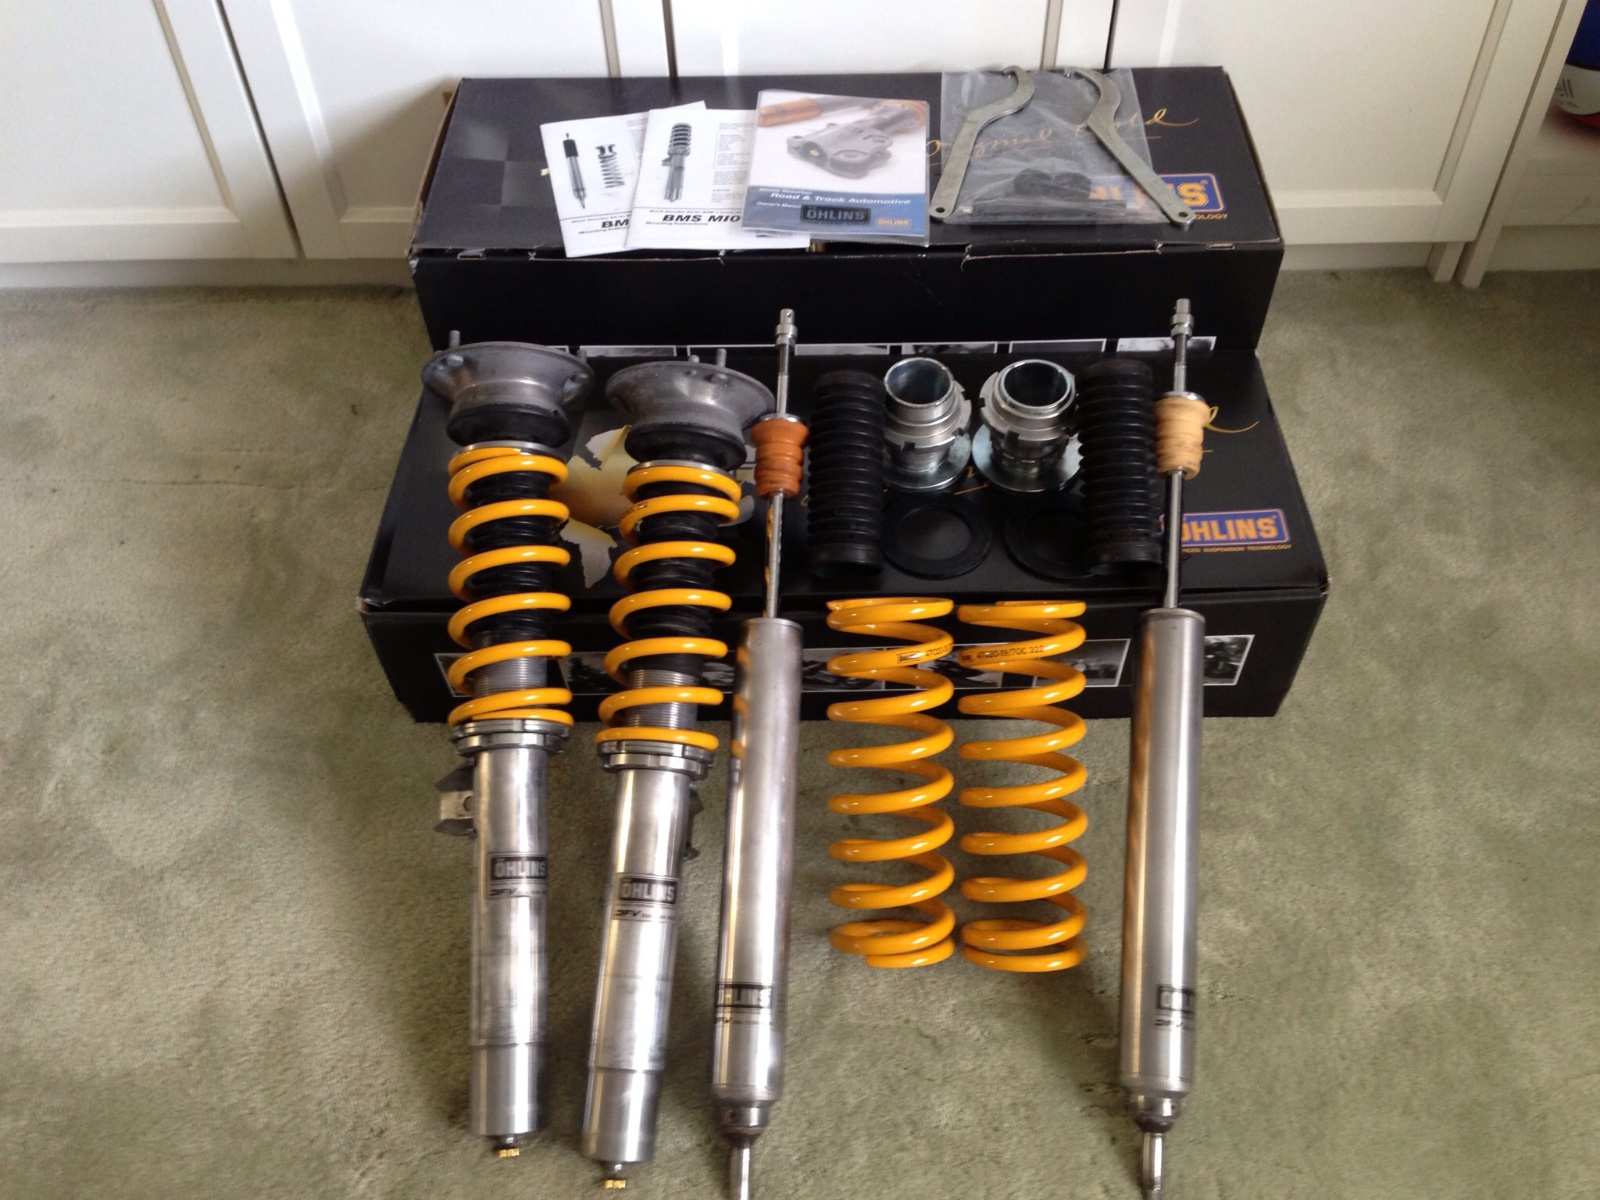 –hlins M100 Road and Track Coilover